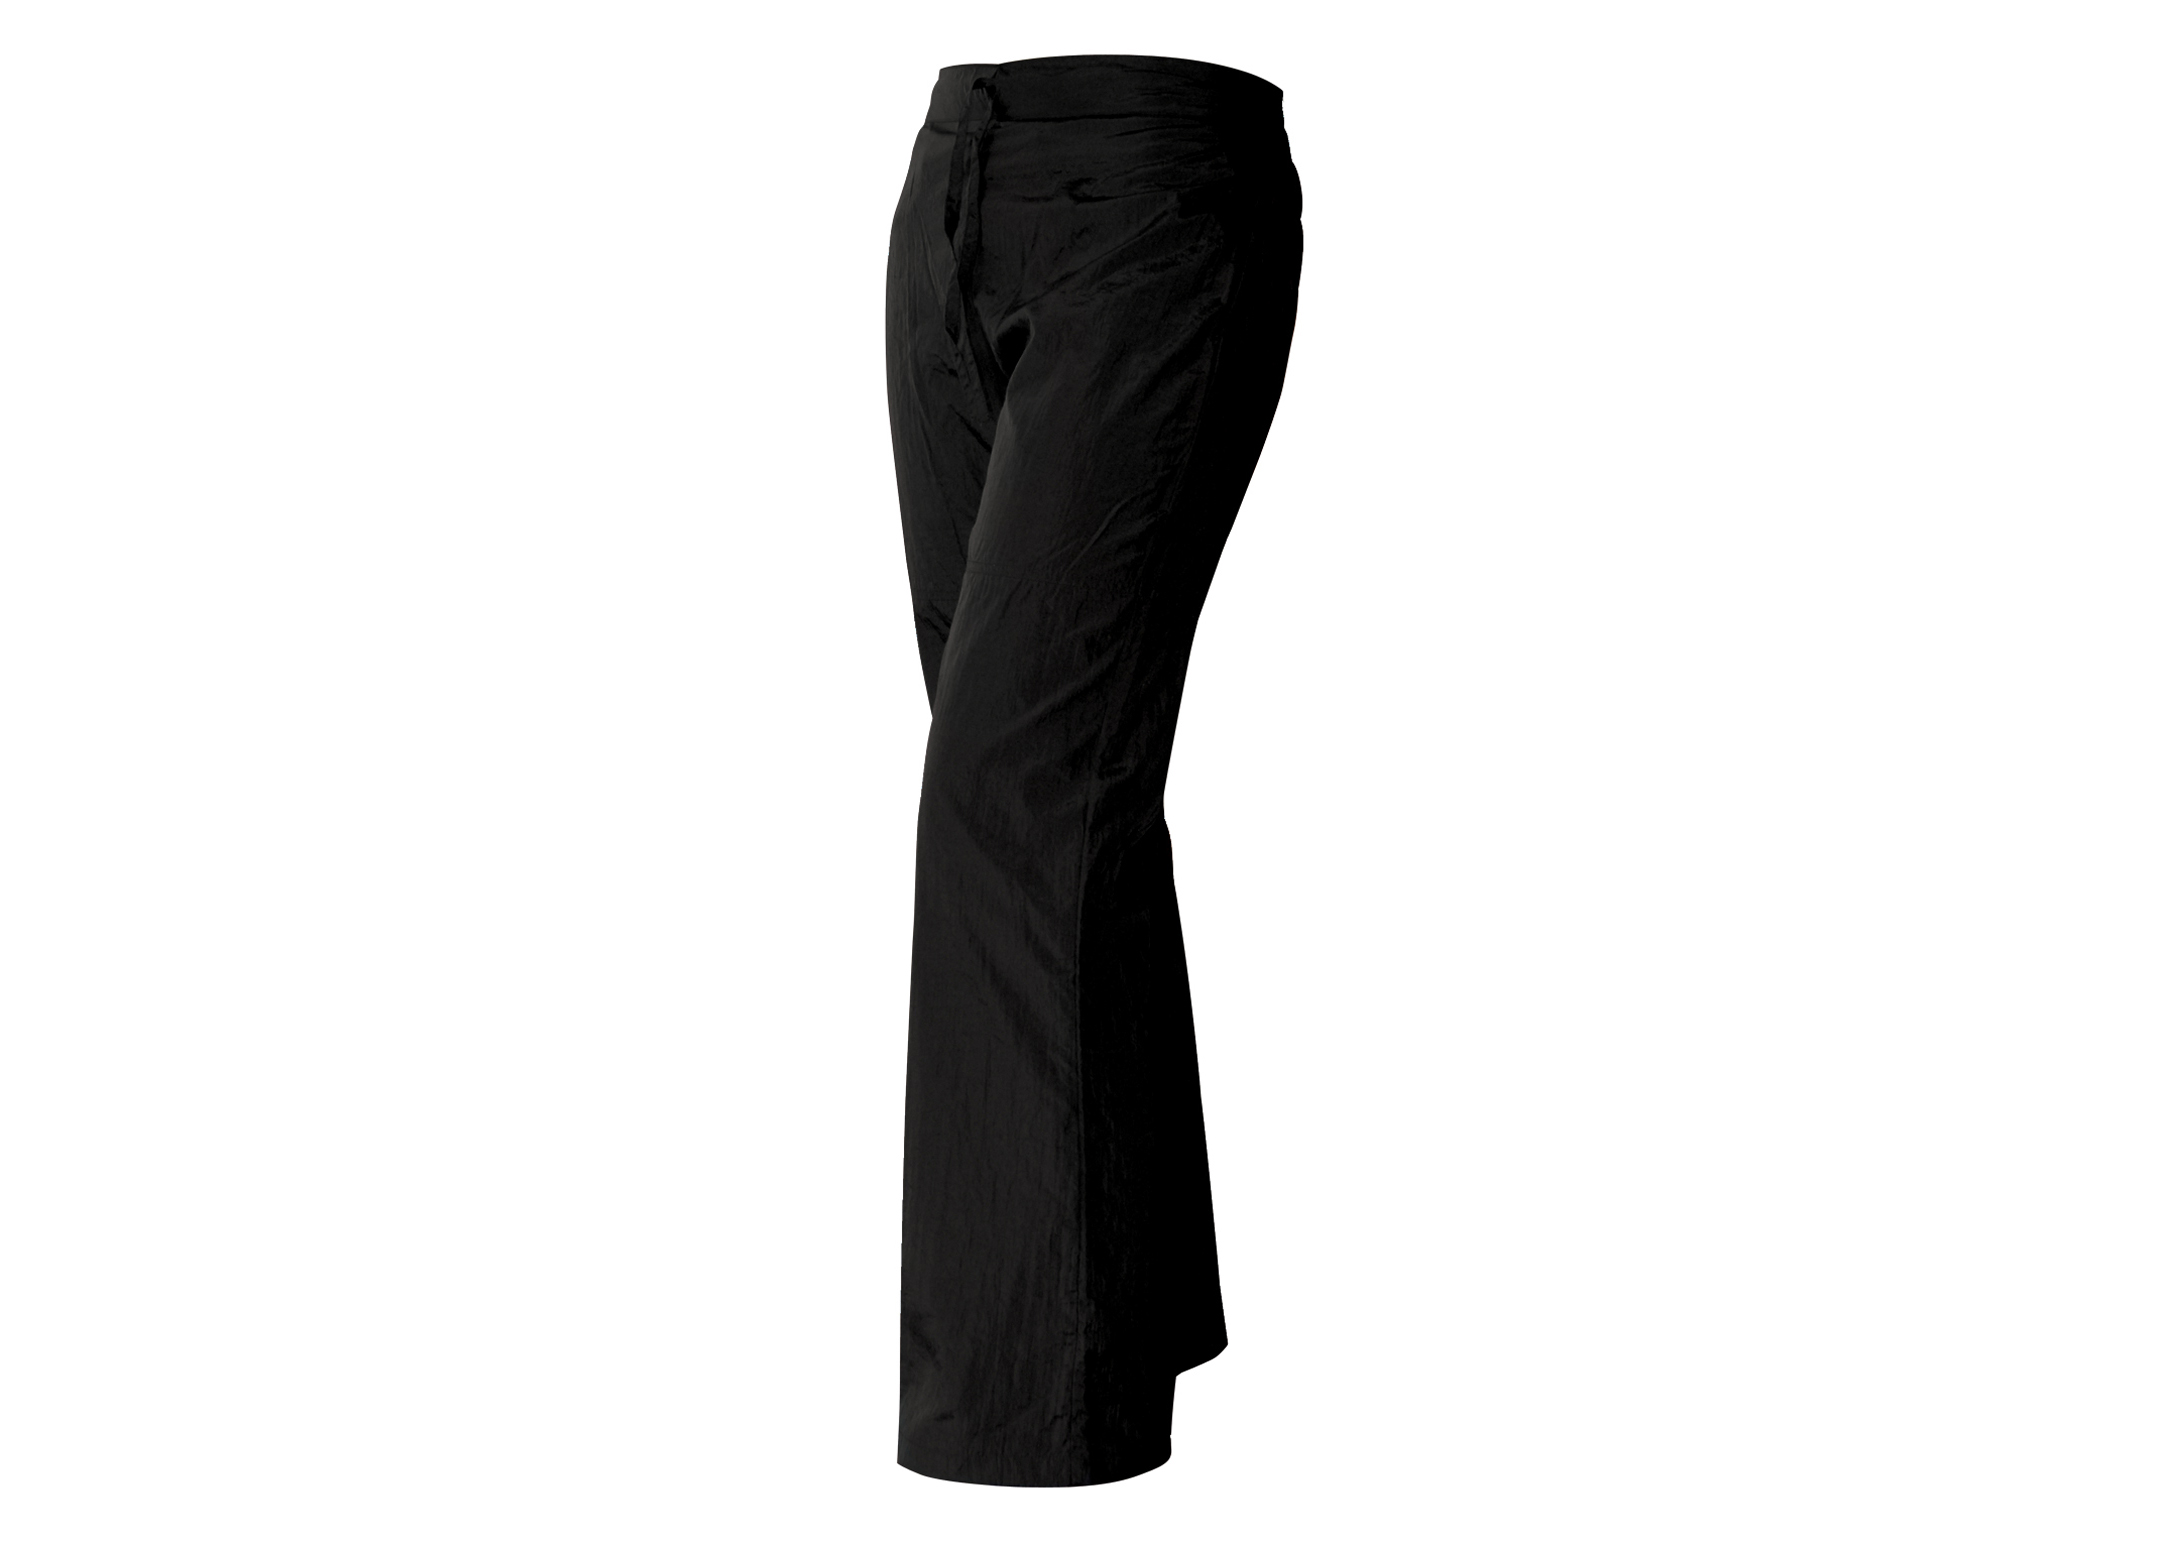 Tikima Galeria Booutcut Trouser for Groomers